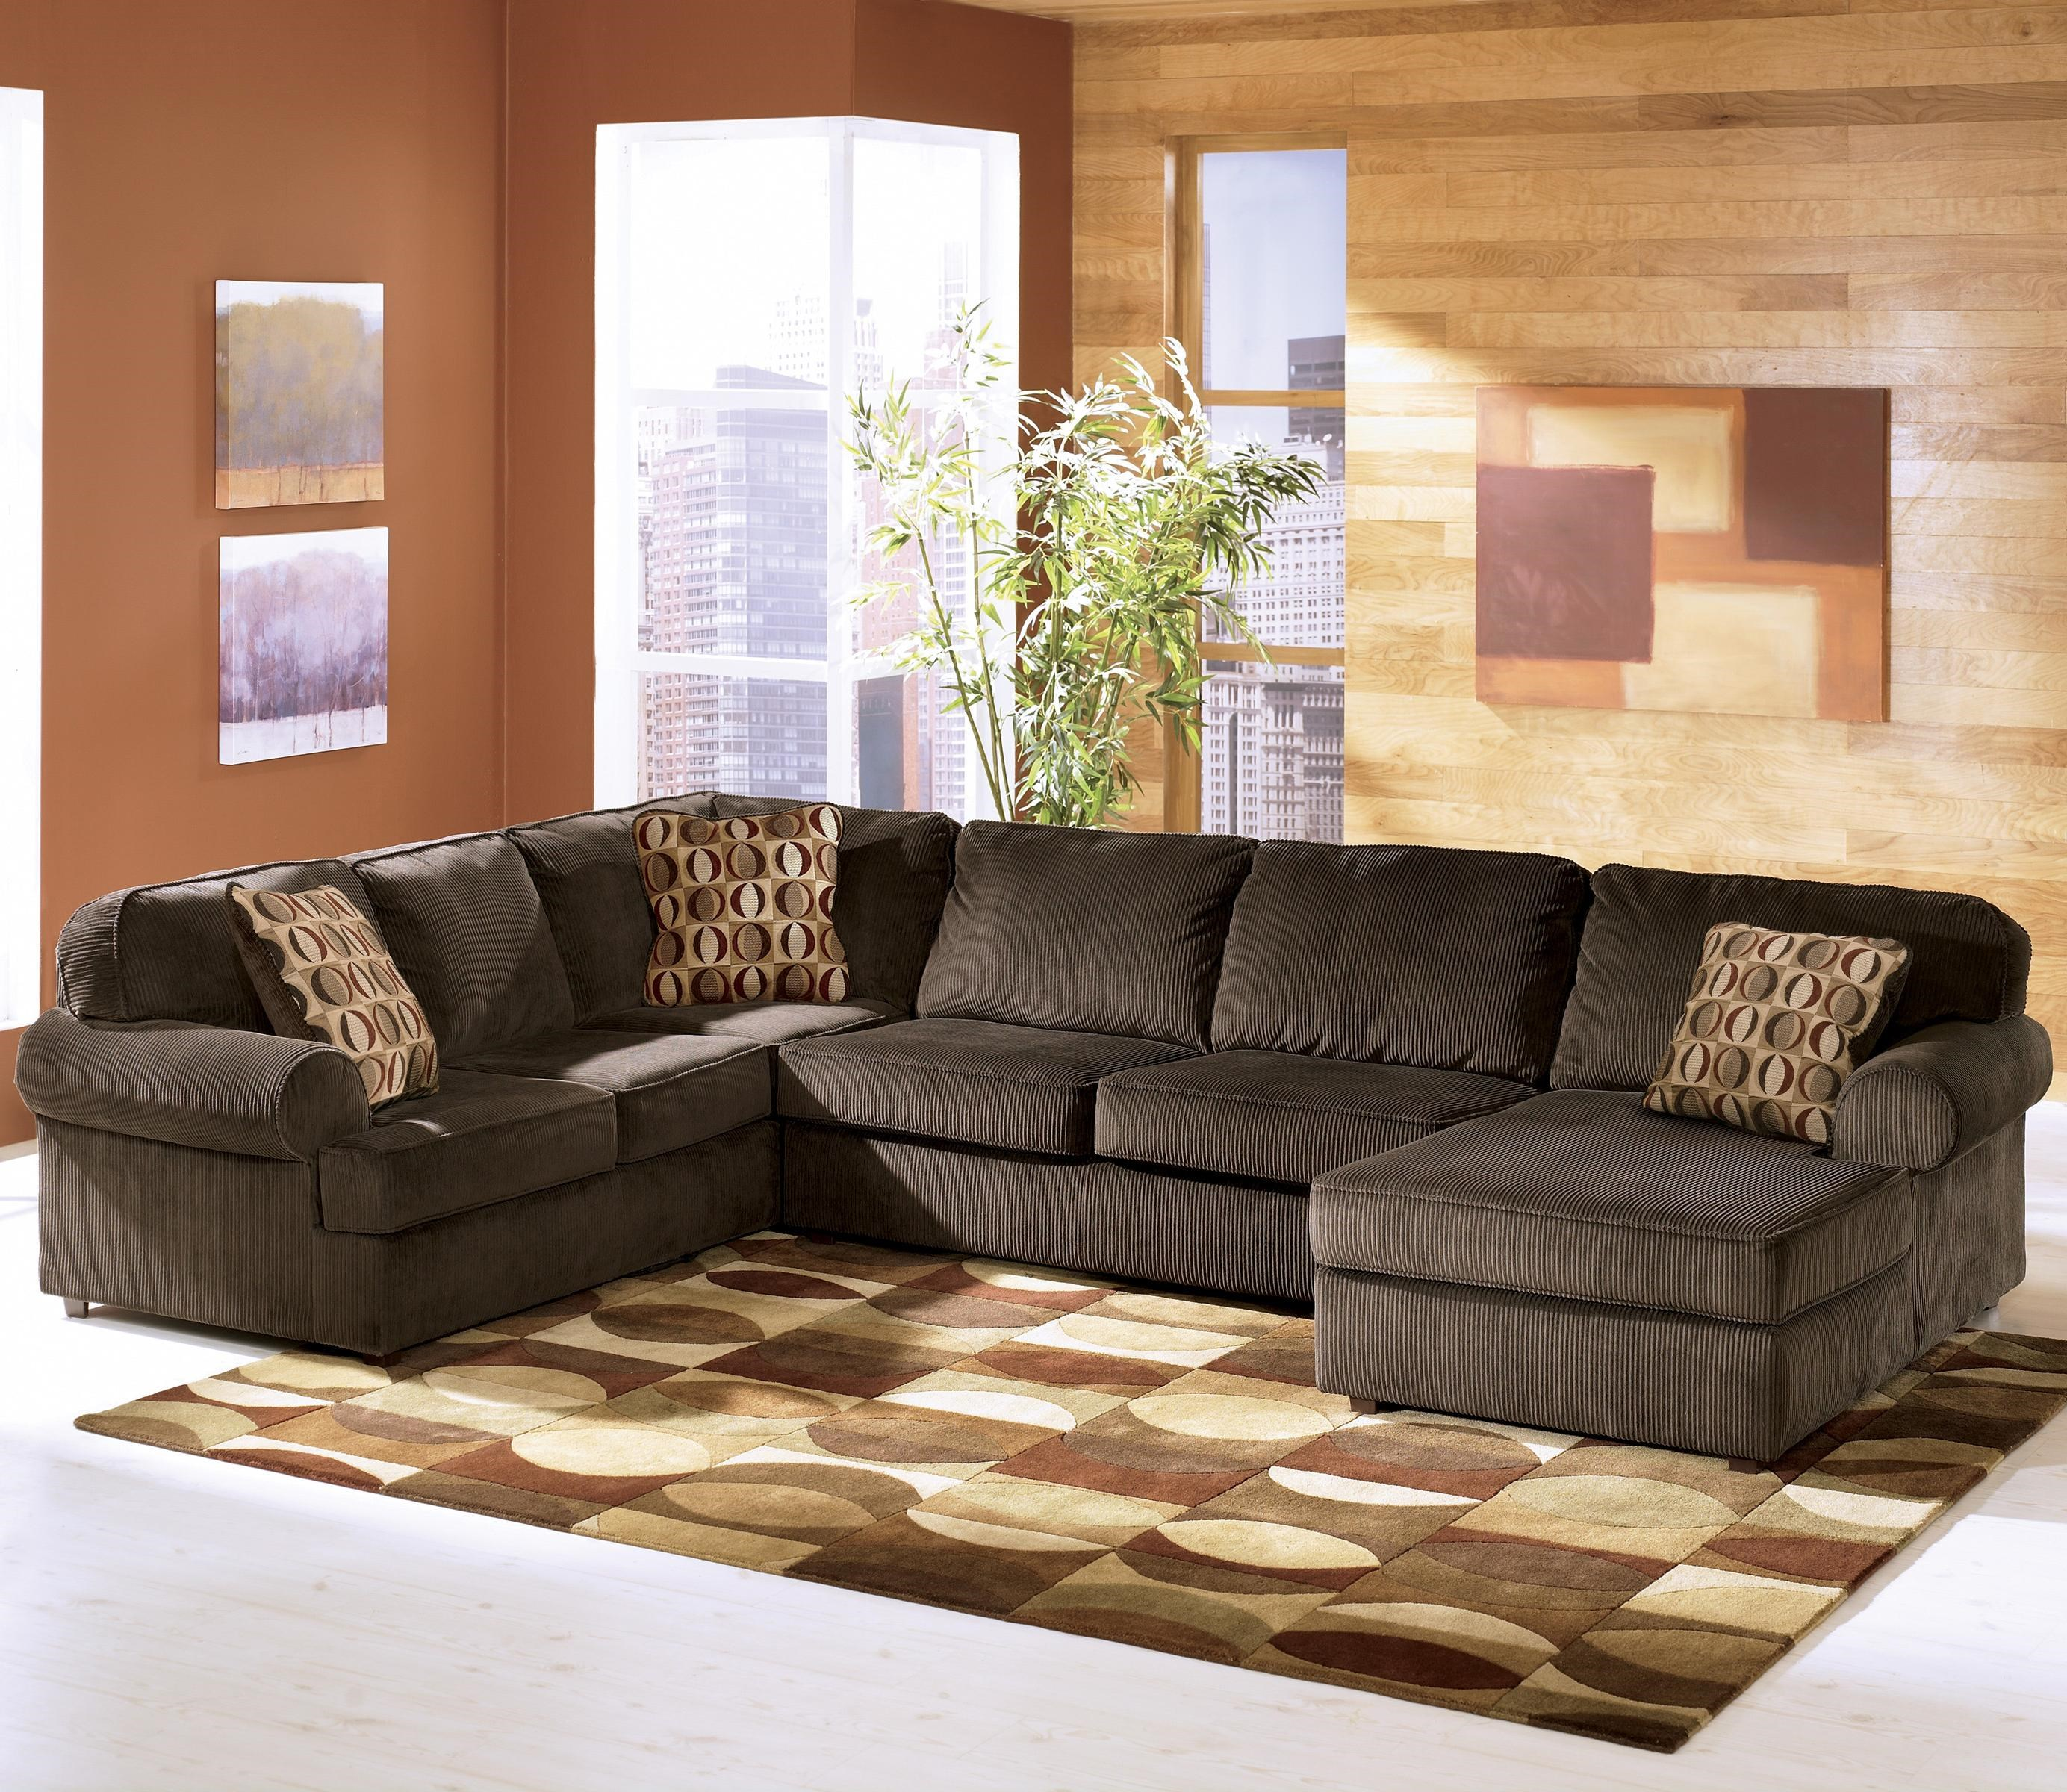 Ashley Furniture Vista   Chocolate3 Piece Sectional With Right Chaise ...